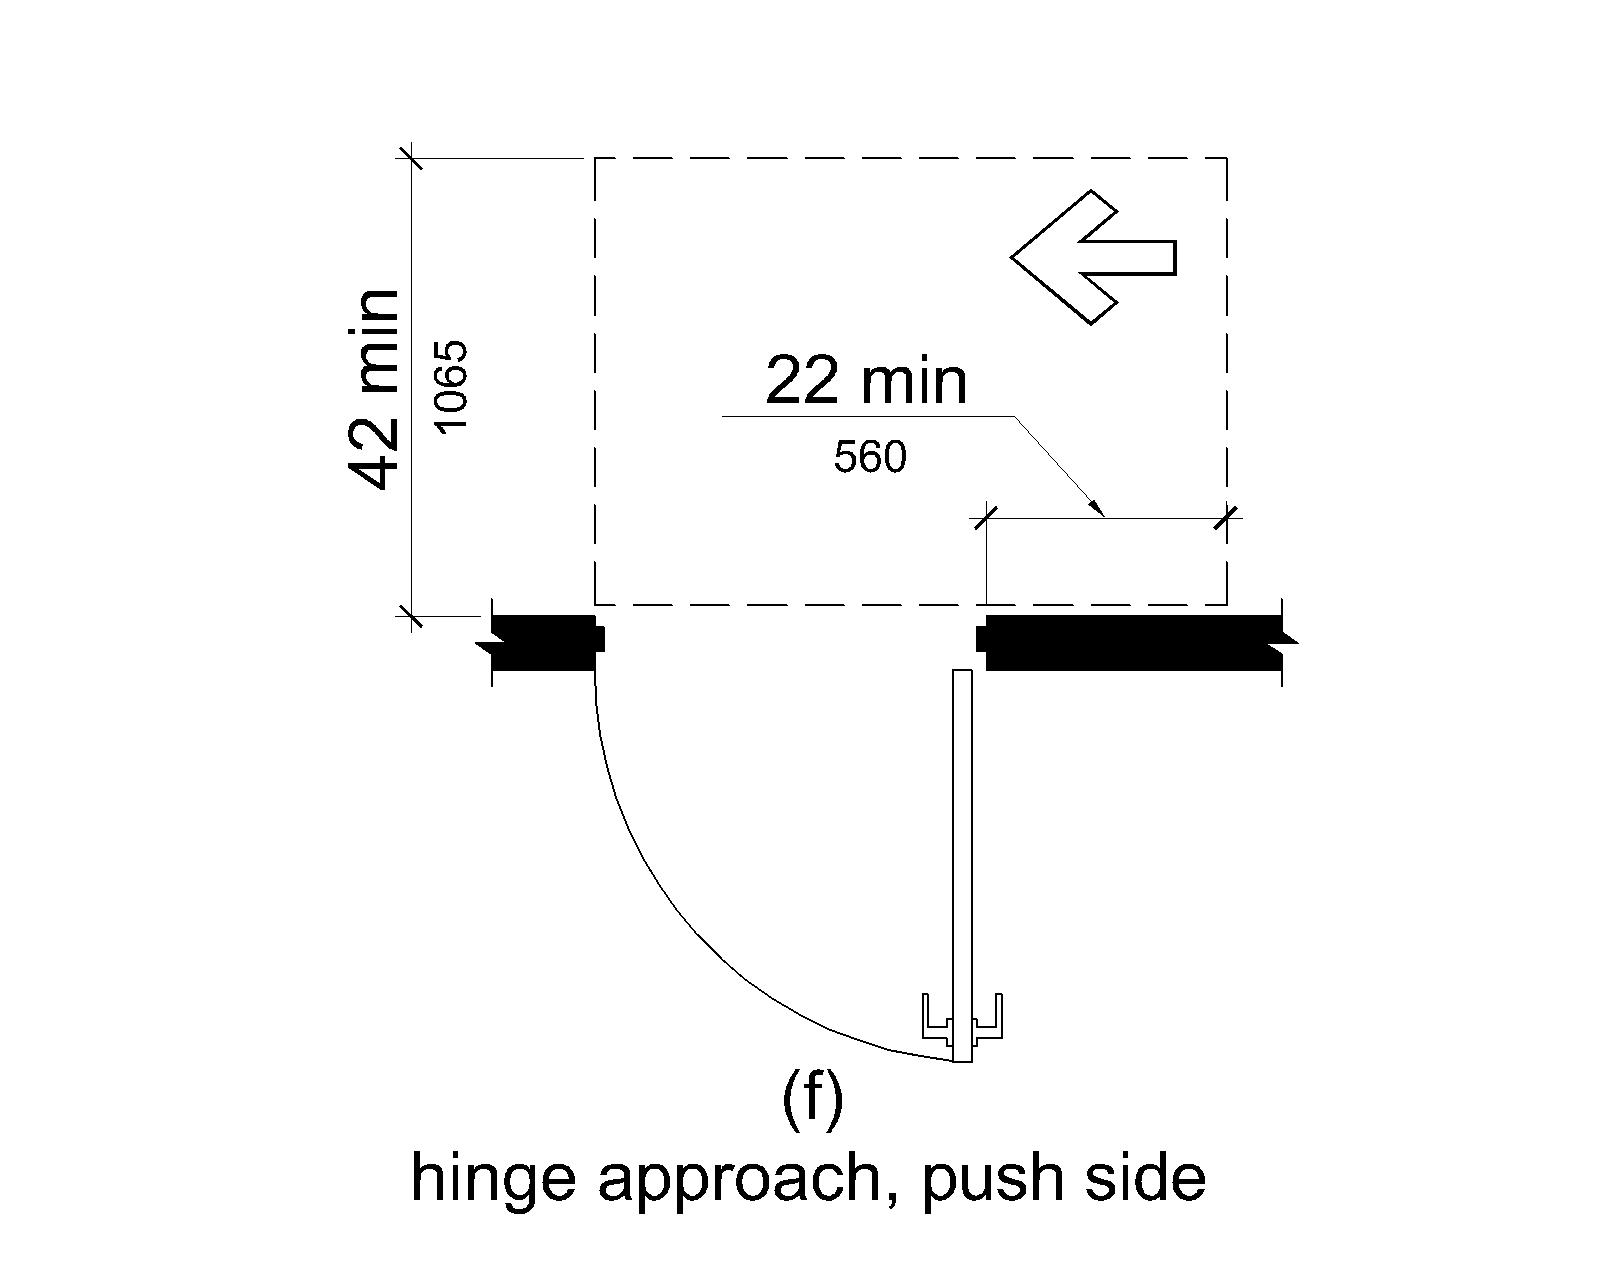 (f) On the push side, maneuvering space extends 22 inches (560 mm) from the hinge side of the doorway and 42 inches (1065 mm) at doors that do not have both a closer and a latch.